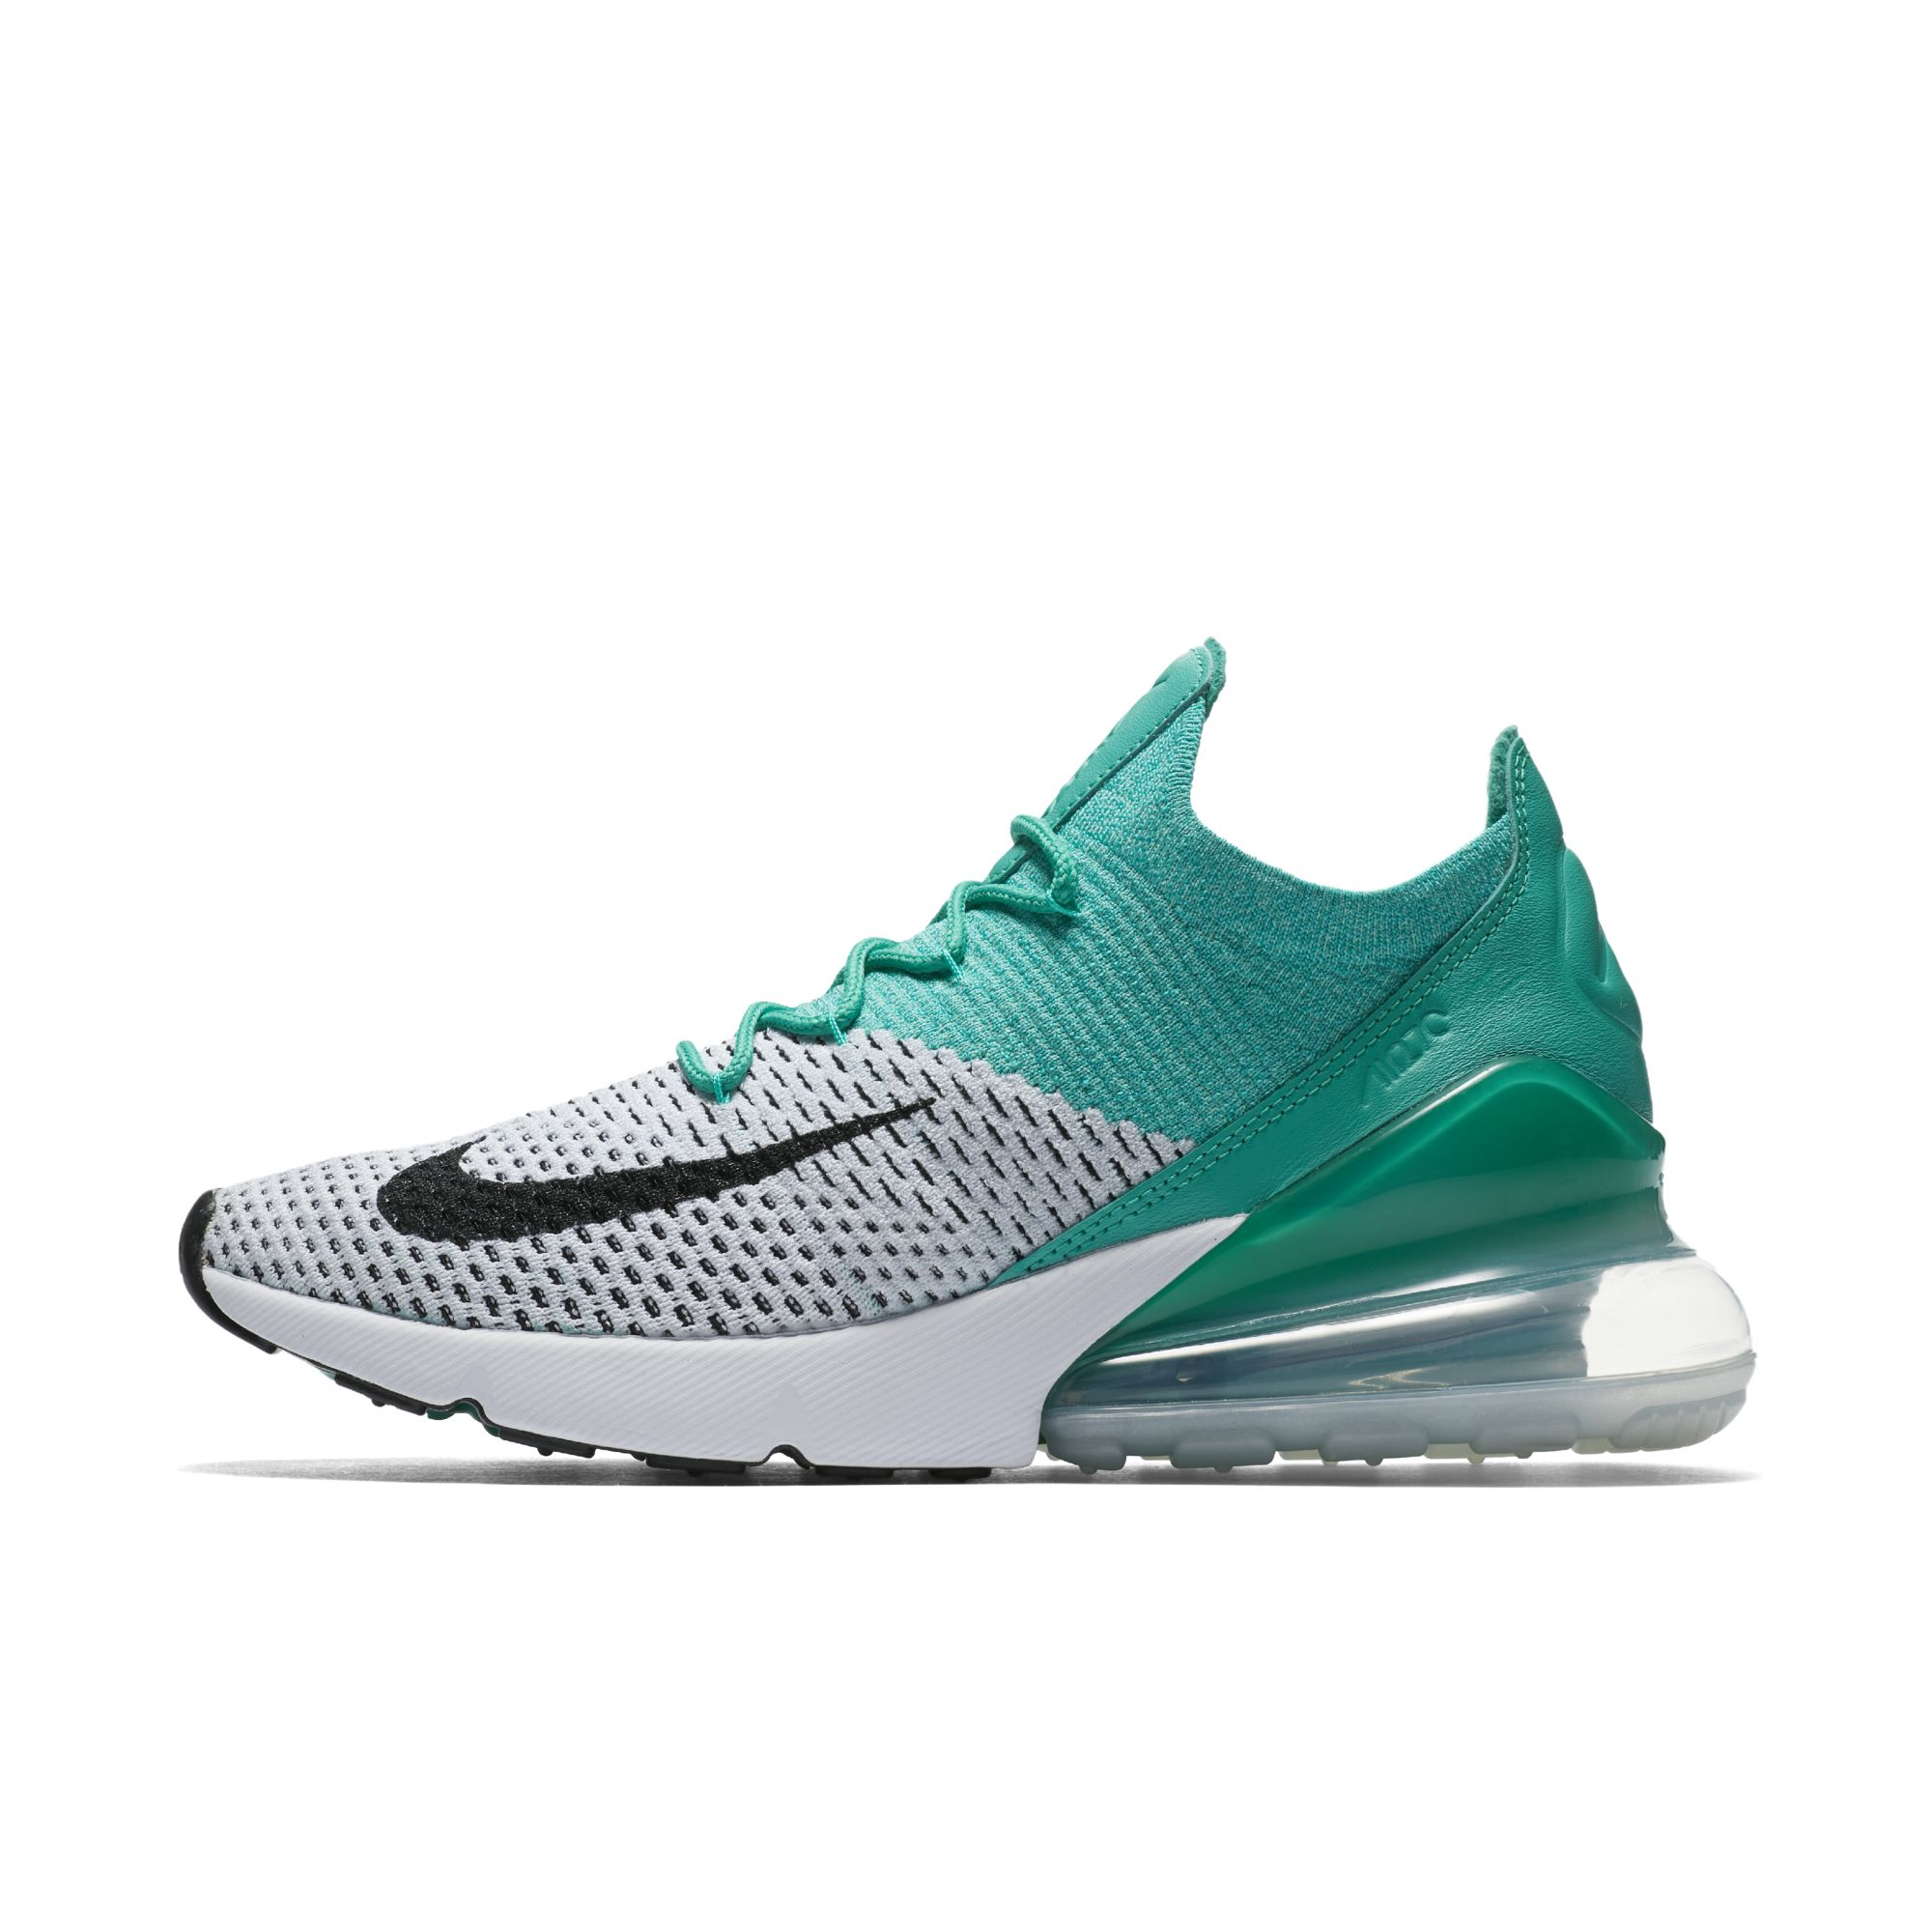 Nike Air Max 270 Flyknit Builds Arrive